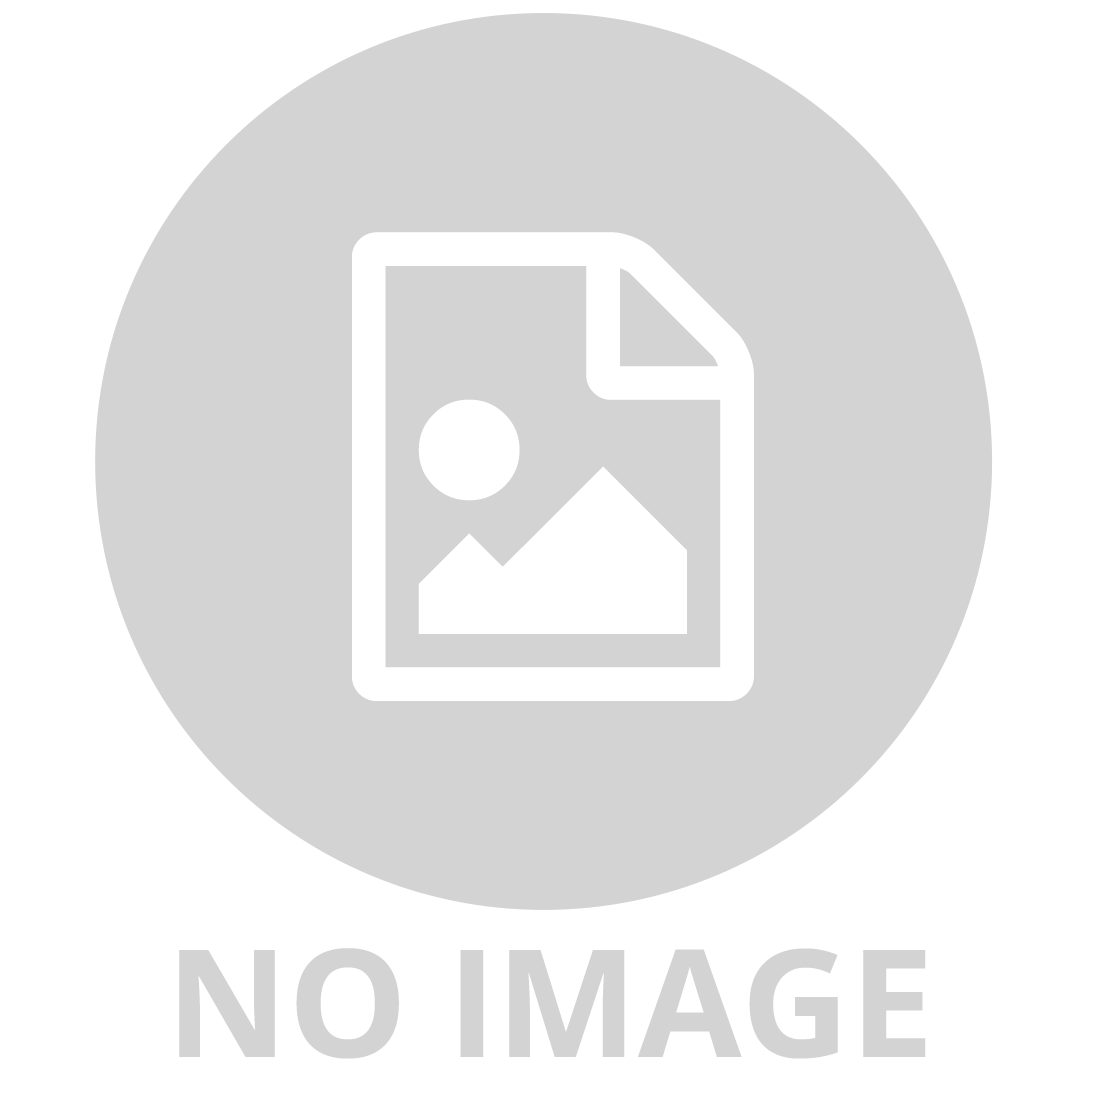 EXR34 900mm MER EXT Rod Br-Chrome FD110900BC